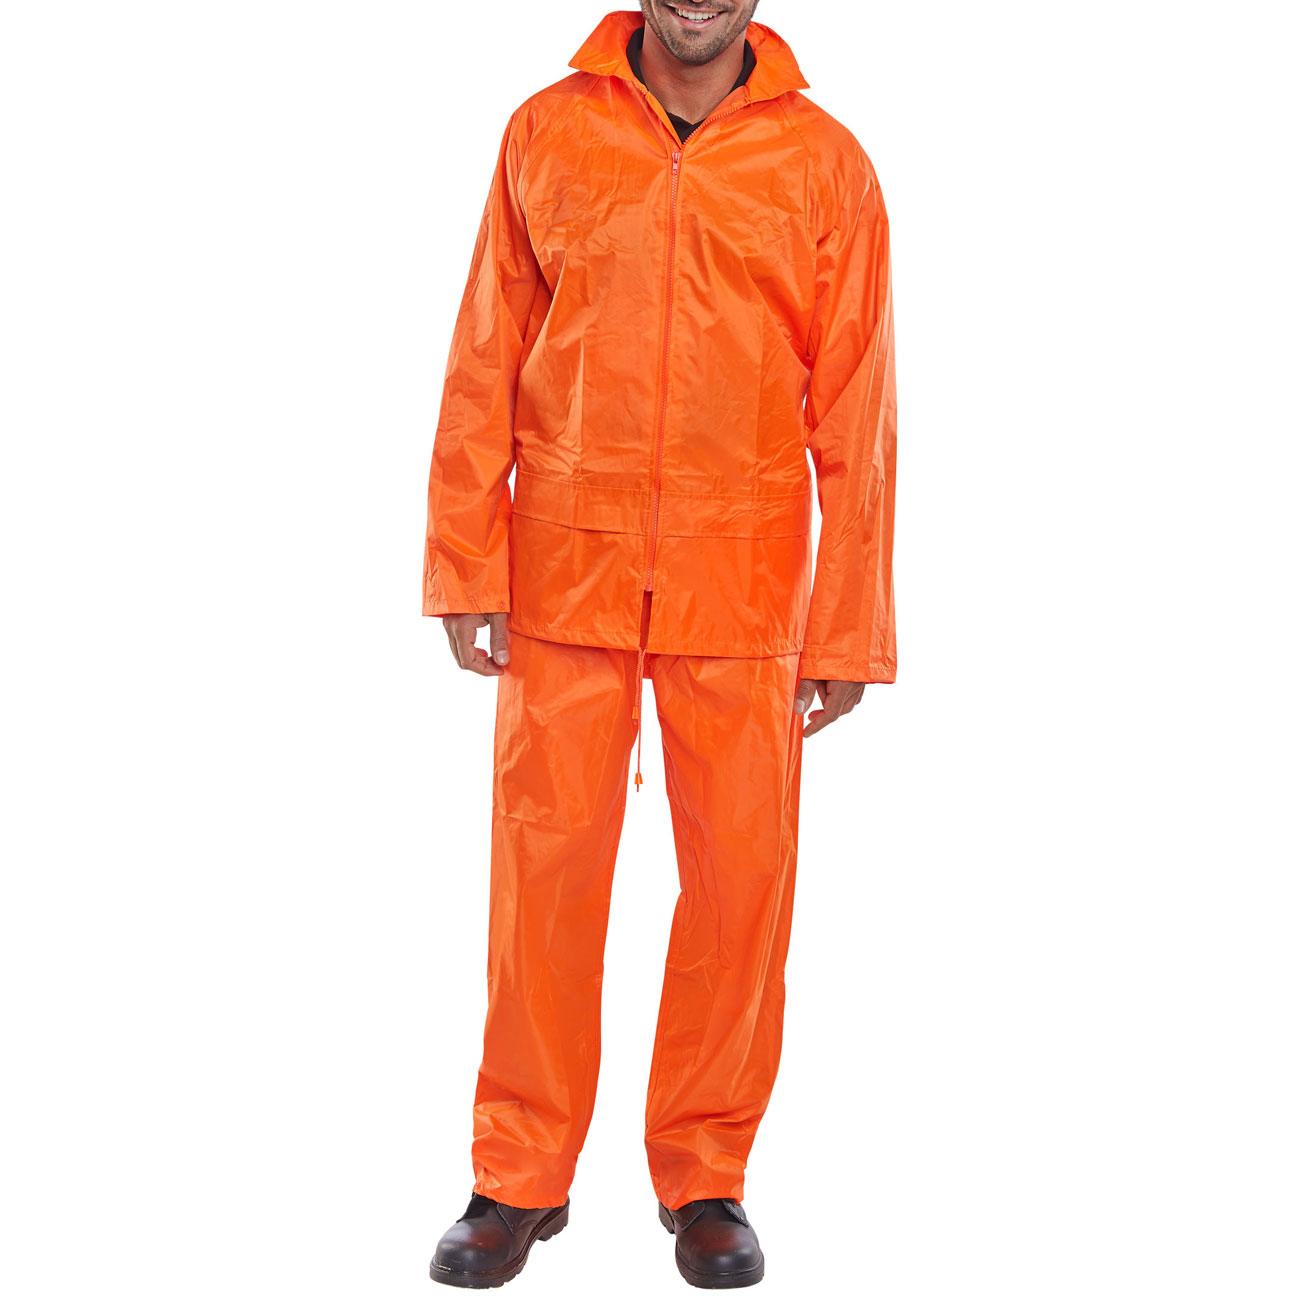 Weatherproof B-Dri Weatherproof Suit Nylon Jacket and Trouser 3XL Orange Ref NBDSORXXXL *Up to 3 Day Leadtime*